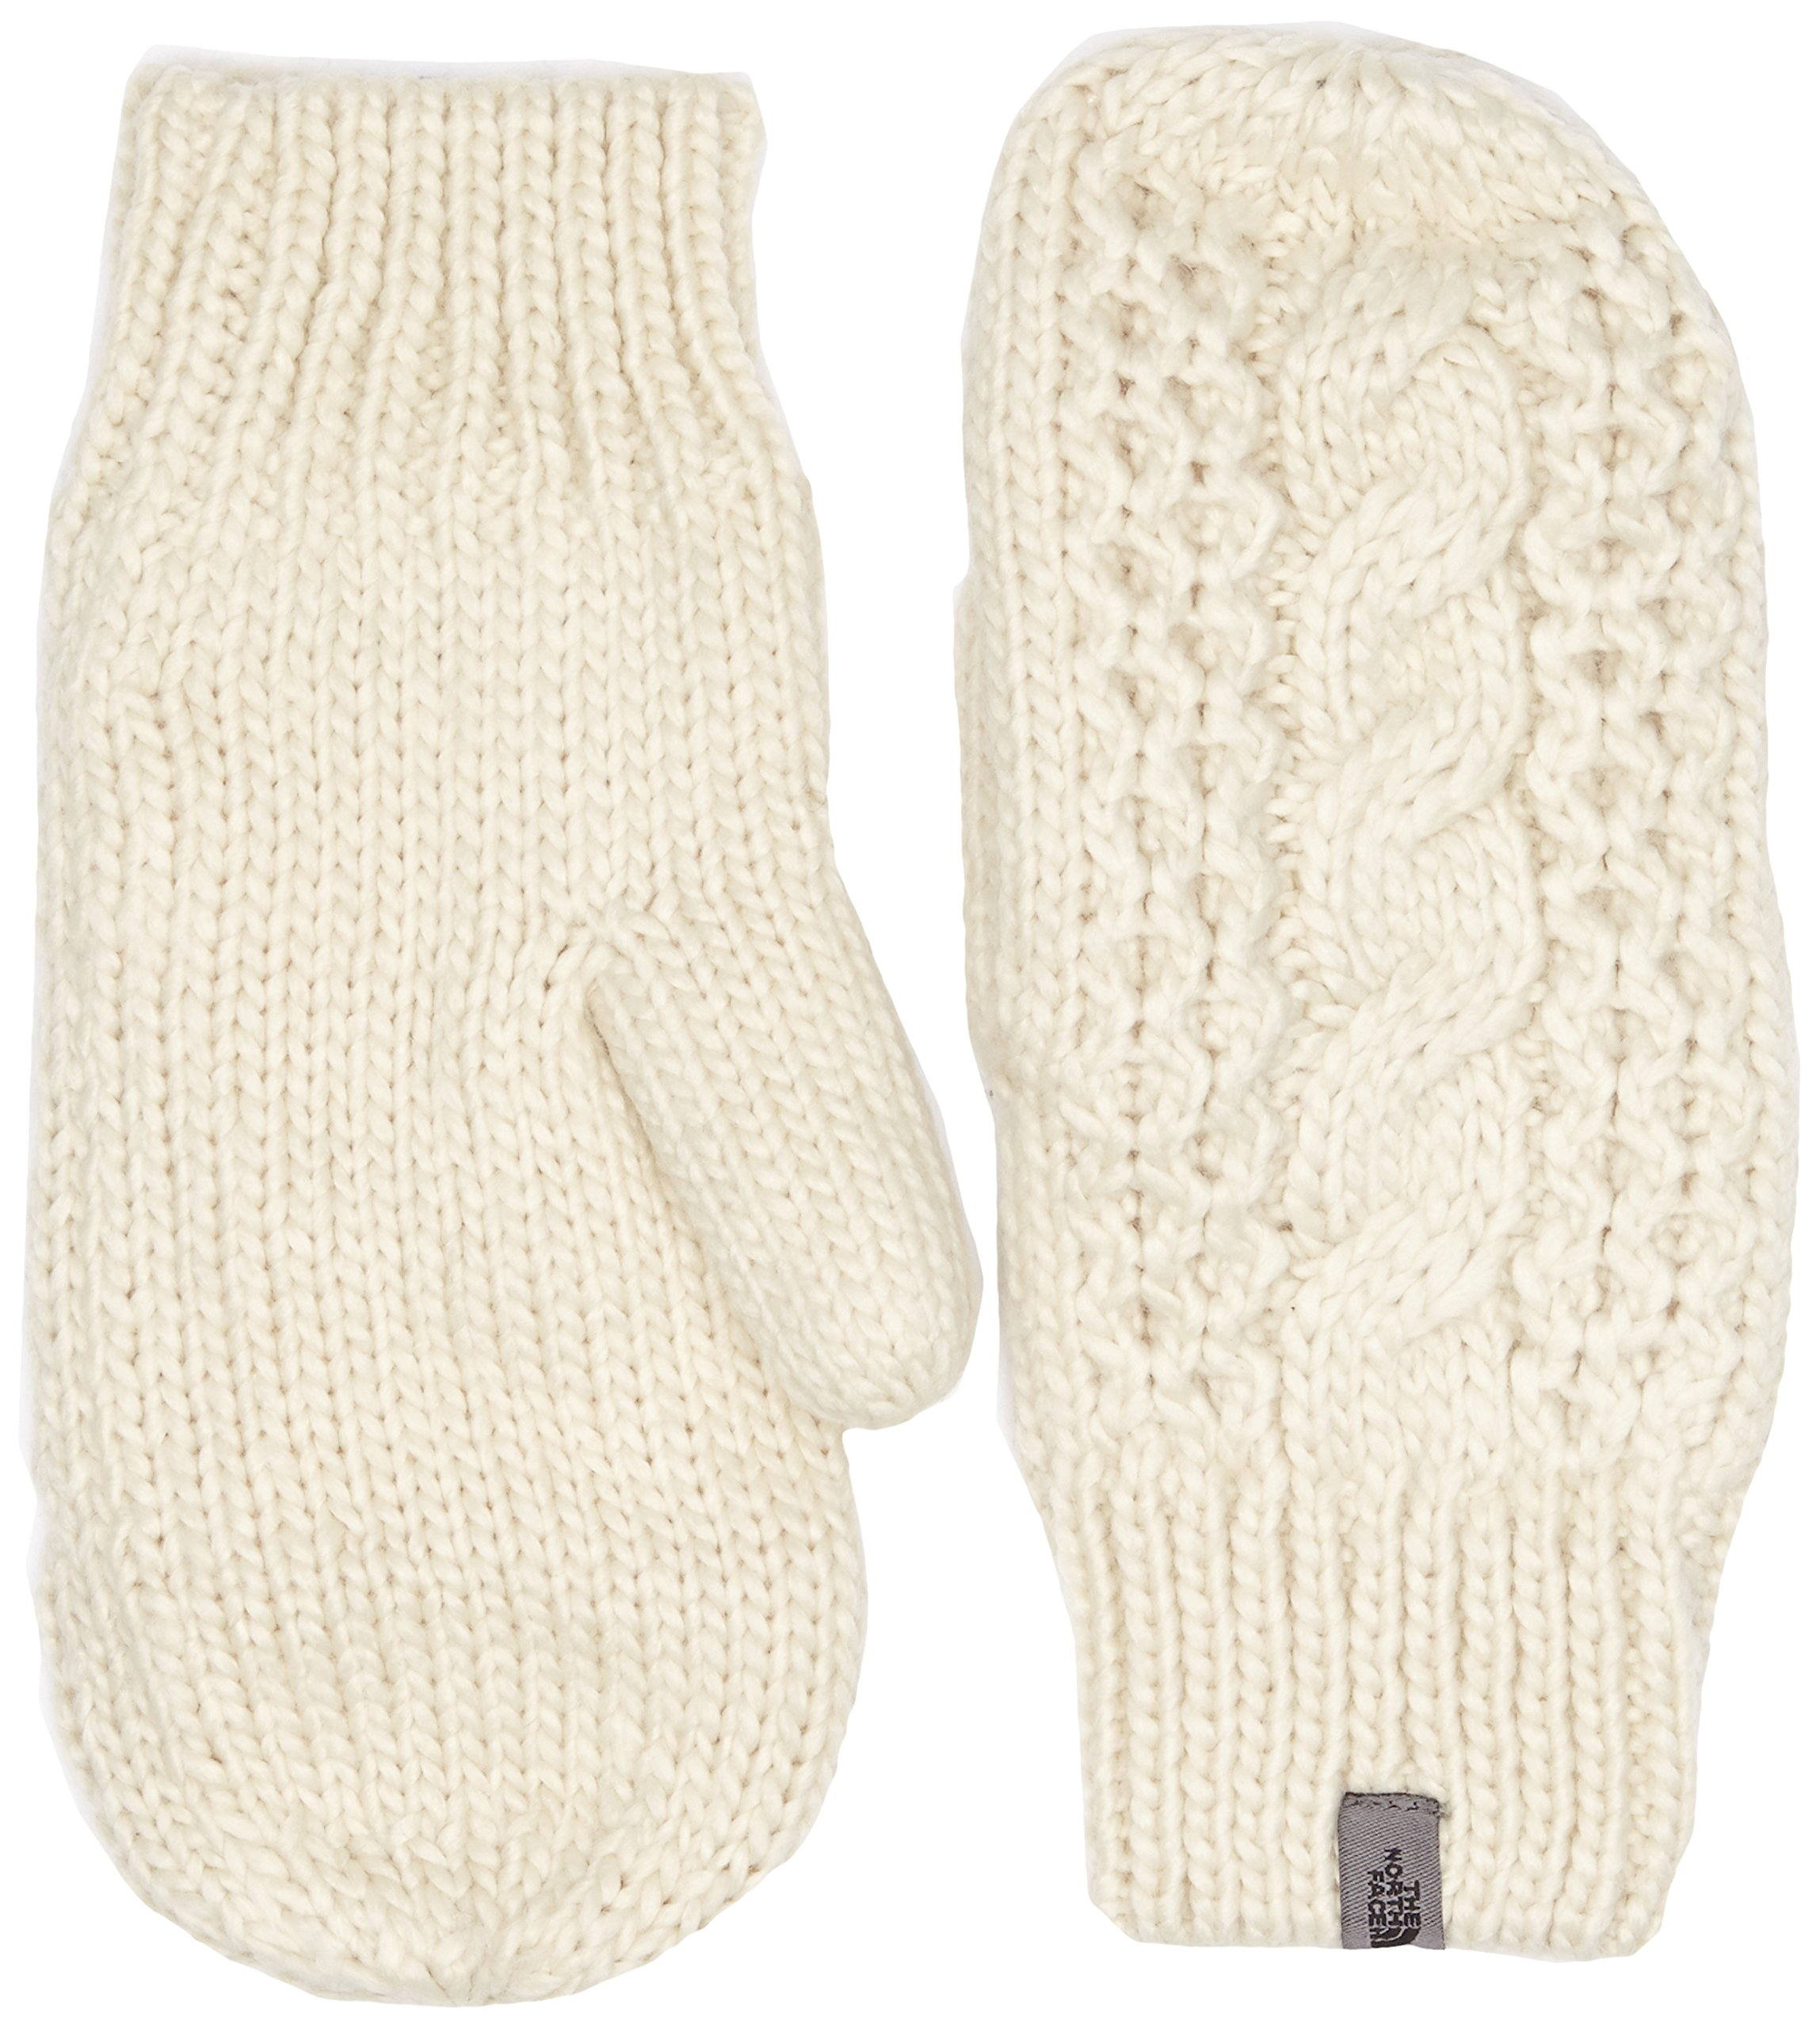 The North Face Women's Cable Knit Mitt Vintage White